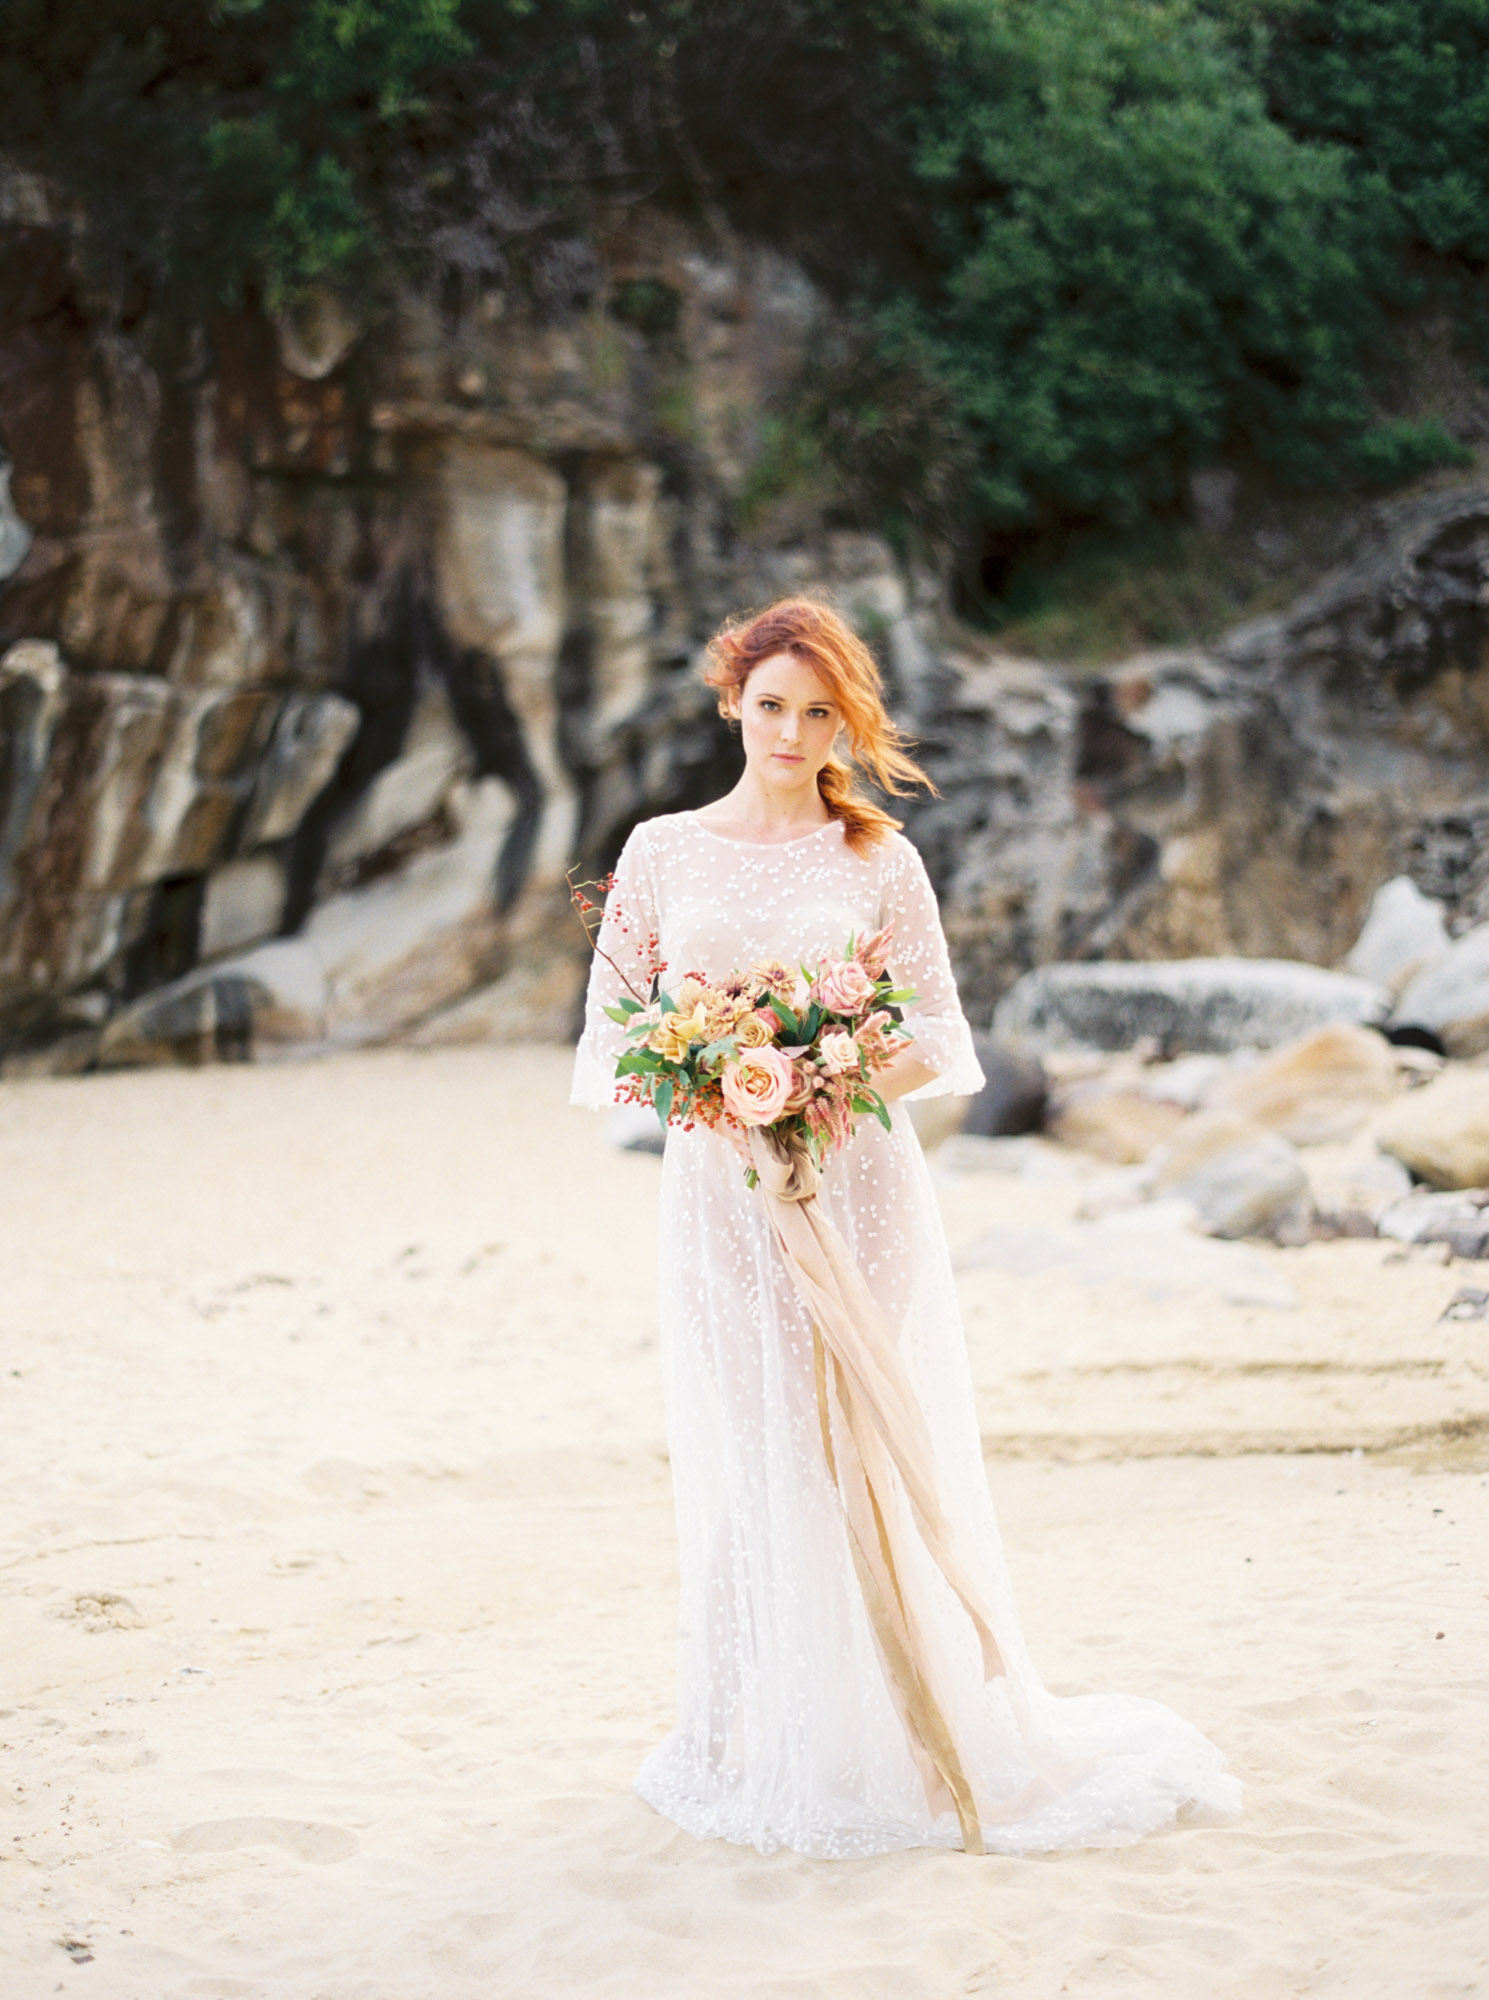 00027- Fine Art Film Newcastle NSW Wedding Photographer Sheri McMahon.jpg